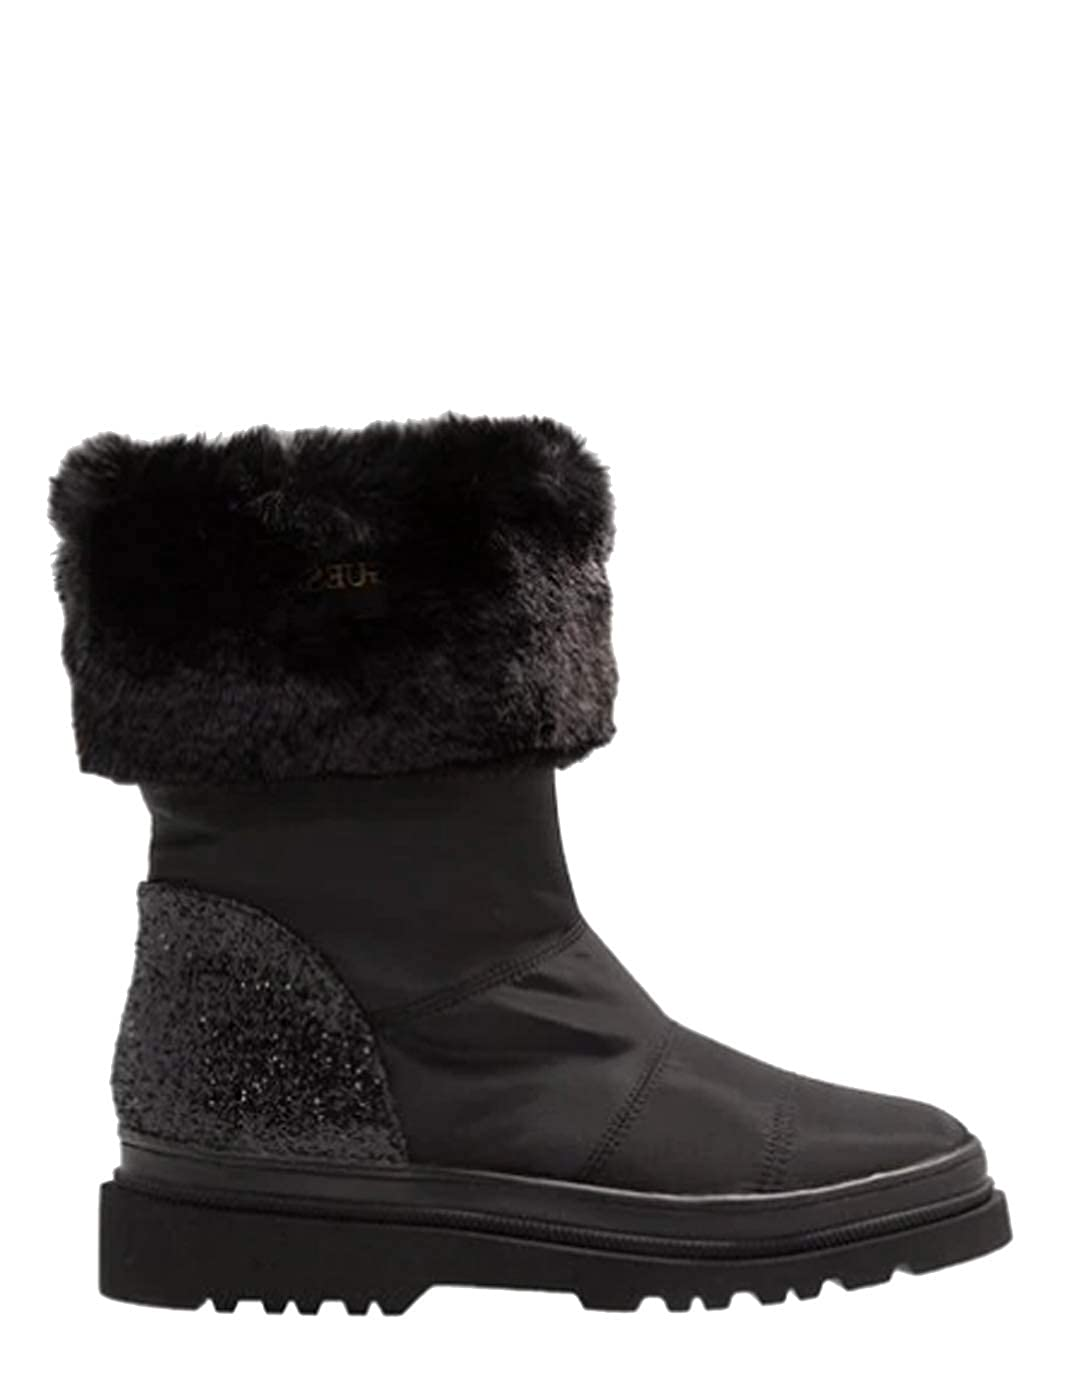 Boots Vefie36 Black Guess Boots Guess BlackSchuhe Black Guess BlackSchuhe Black Vefie36 Boots jR5AL34